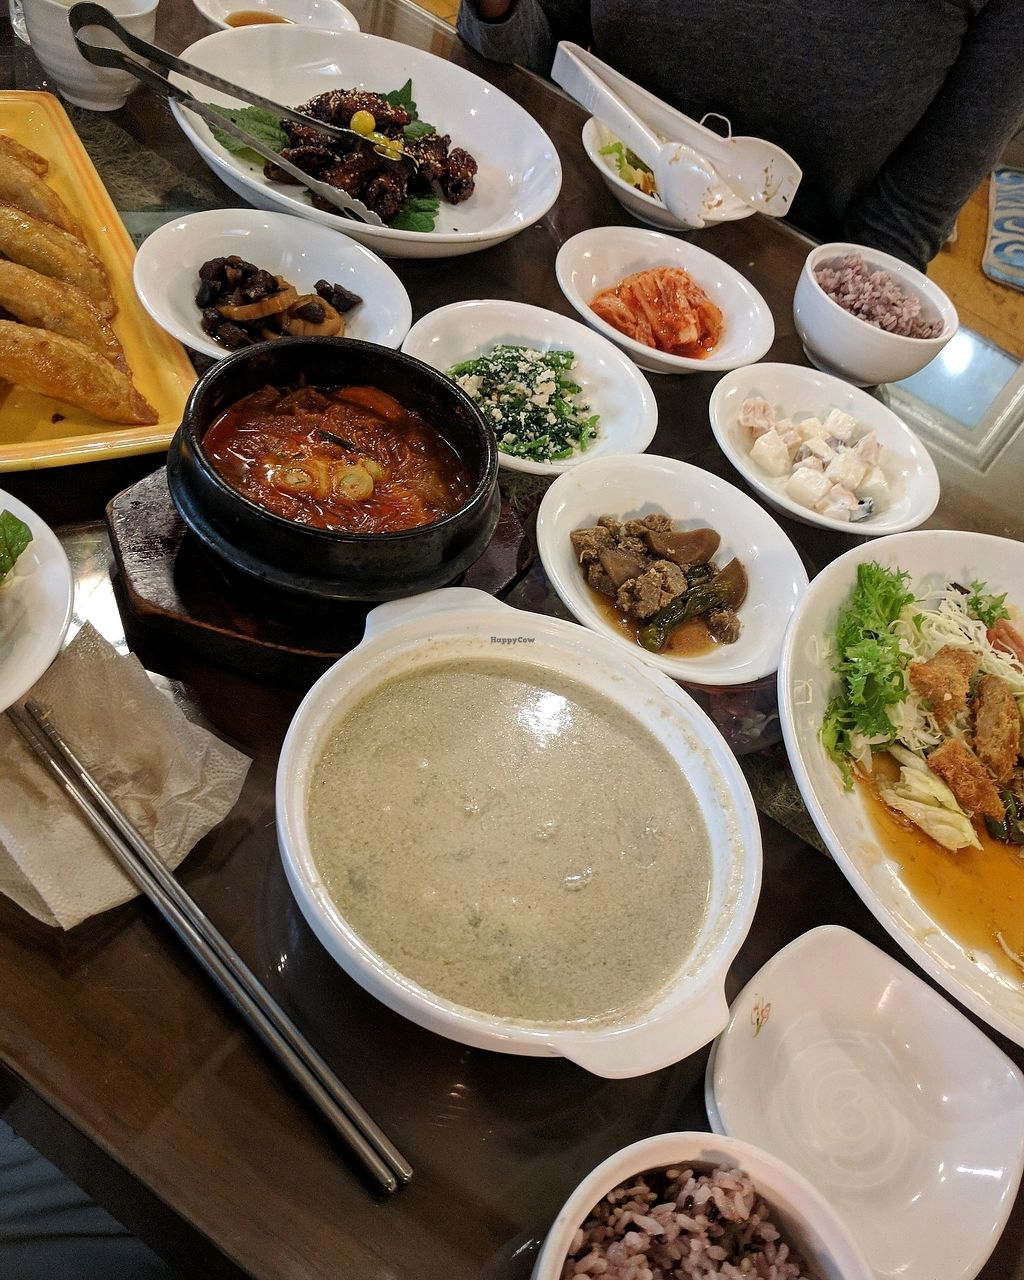 "Photo of Oh Se Gae Hyang - 오세계향  by <a href=""/members/profile/mikeandsunny"">mikeandsunny</a> <br/>Lunch <br/> January 16, 2018  - <a href='/contact/abuse/image/10860/347060'>Report</a>"